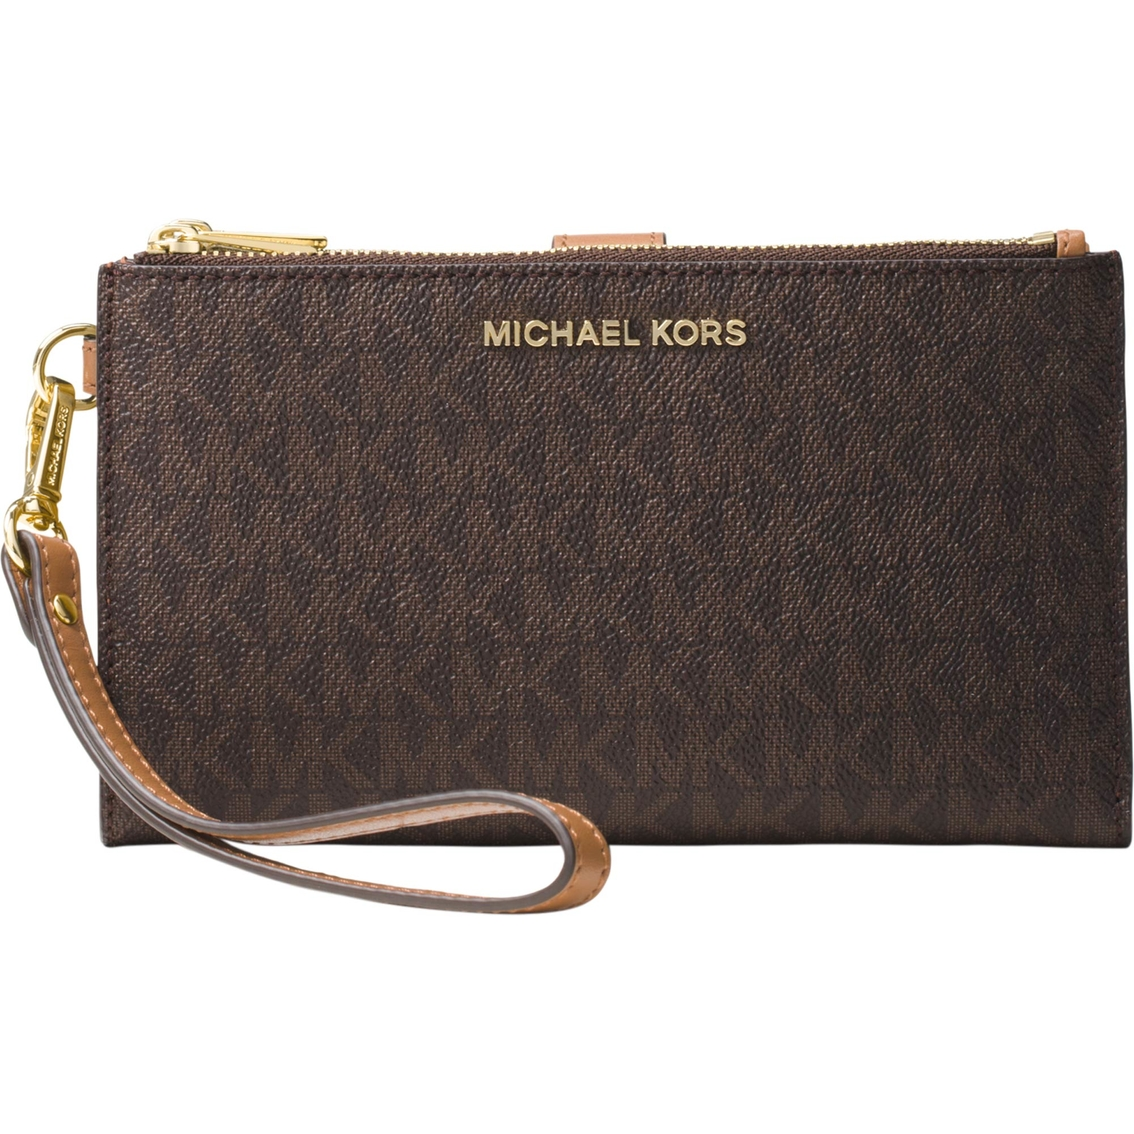 66f26646762175 Michael Kors Signature Double Zip Wristlet | Handbags | Shop The ...